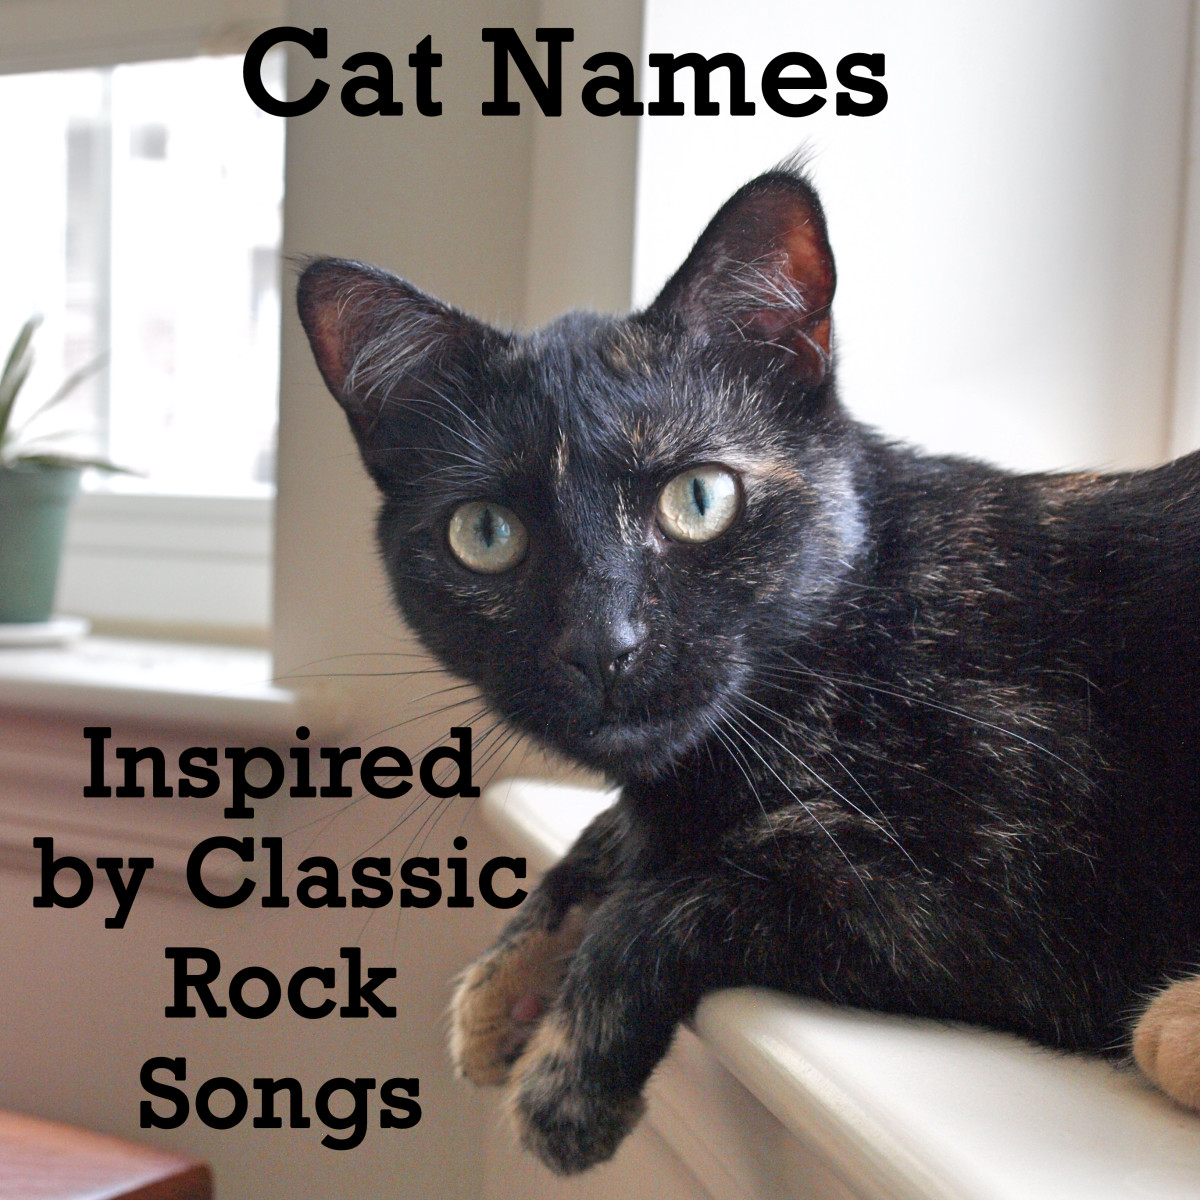 A classic cat deserves a classic rock kind of name.  Here's a list to get you inspired.